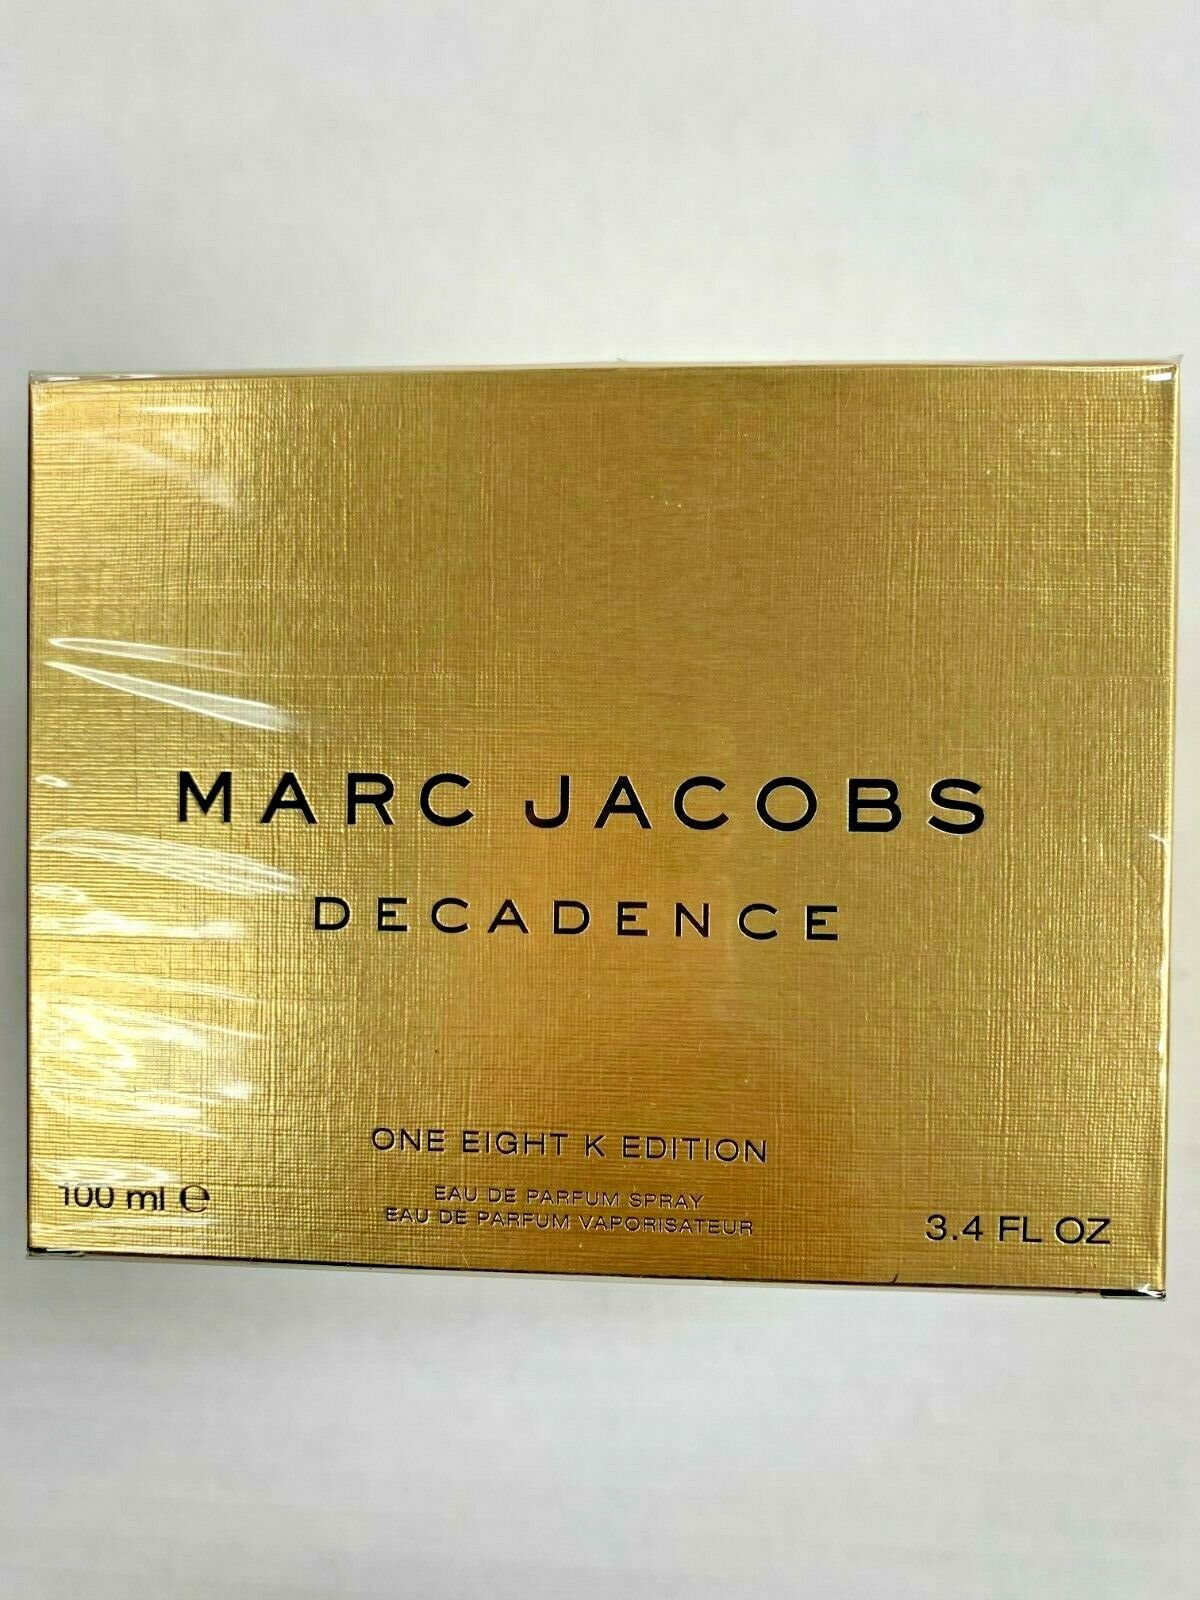 Primary image for Marc Jacobs Decadence Gold One Eight K Edition for Women, 3.4 Ounce edp spray